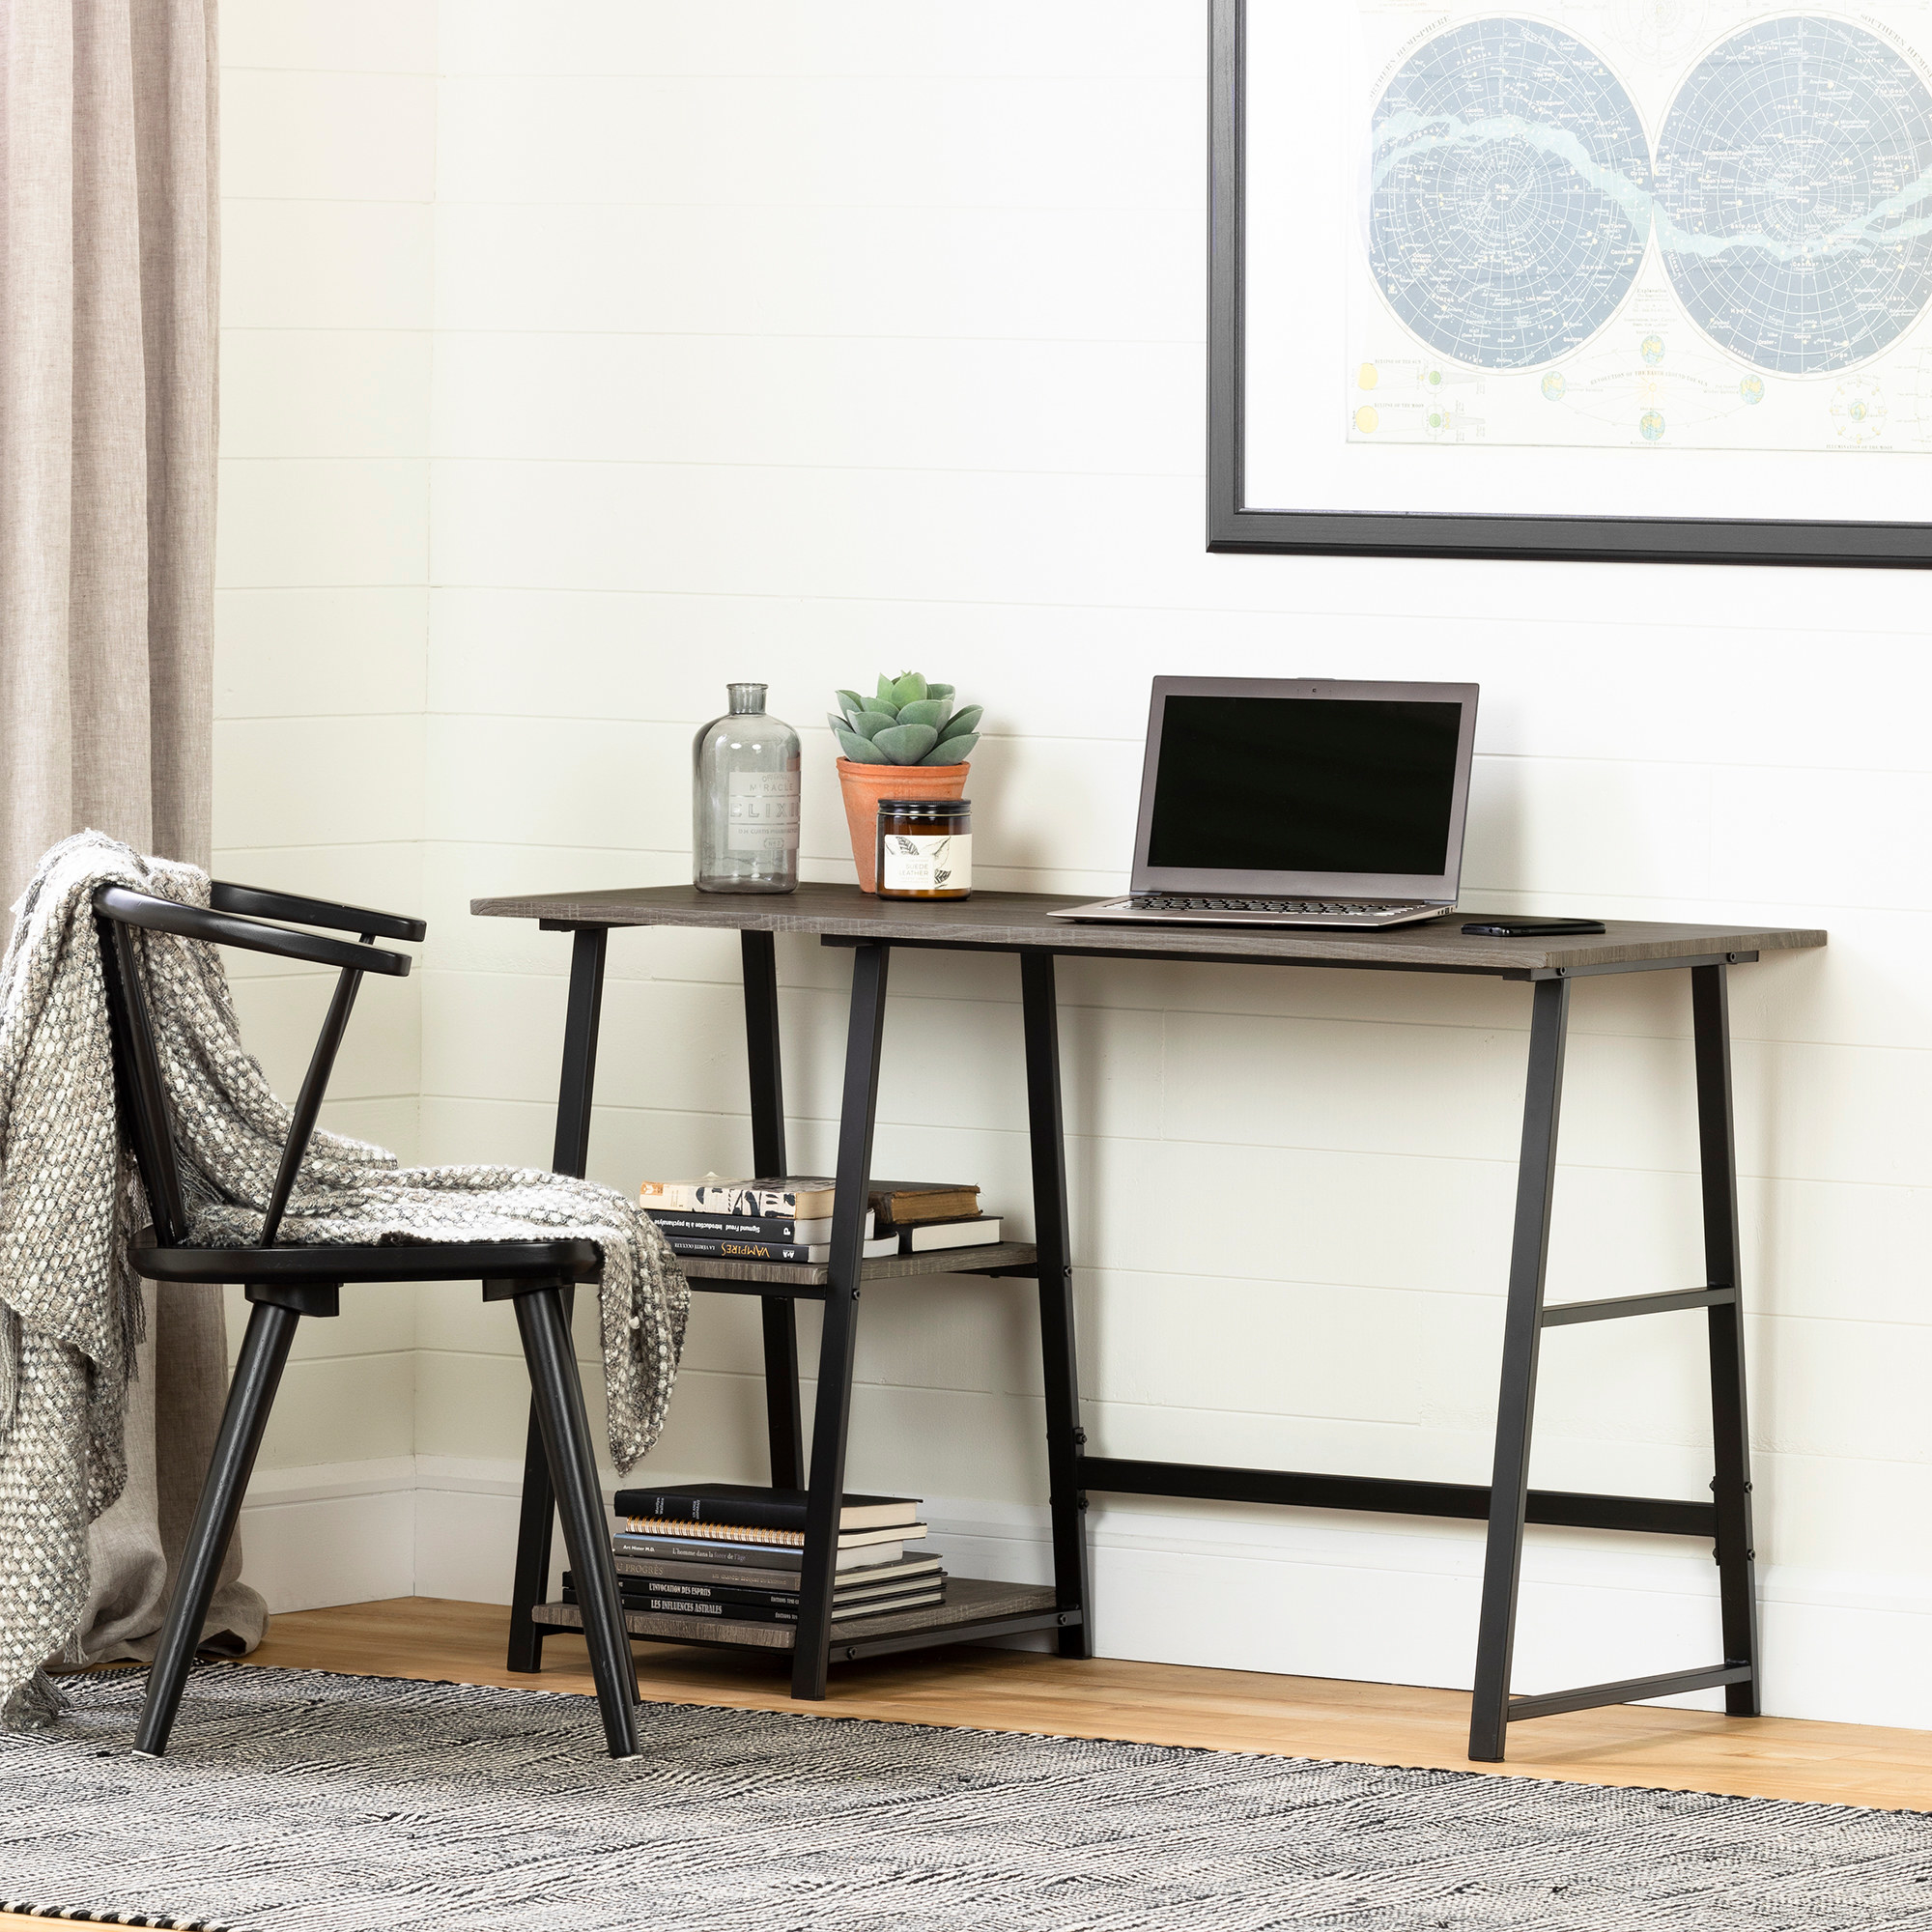 The black and wooden desk in an office setup